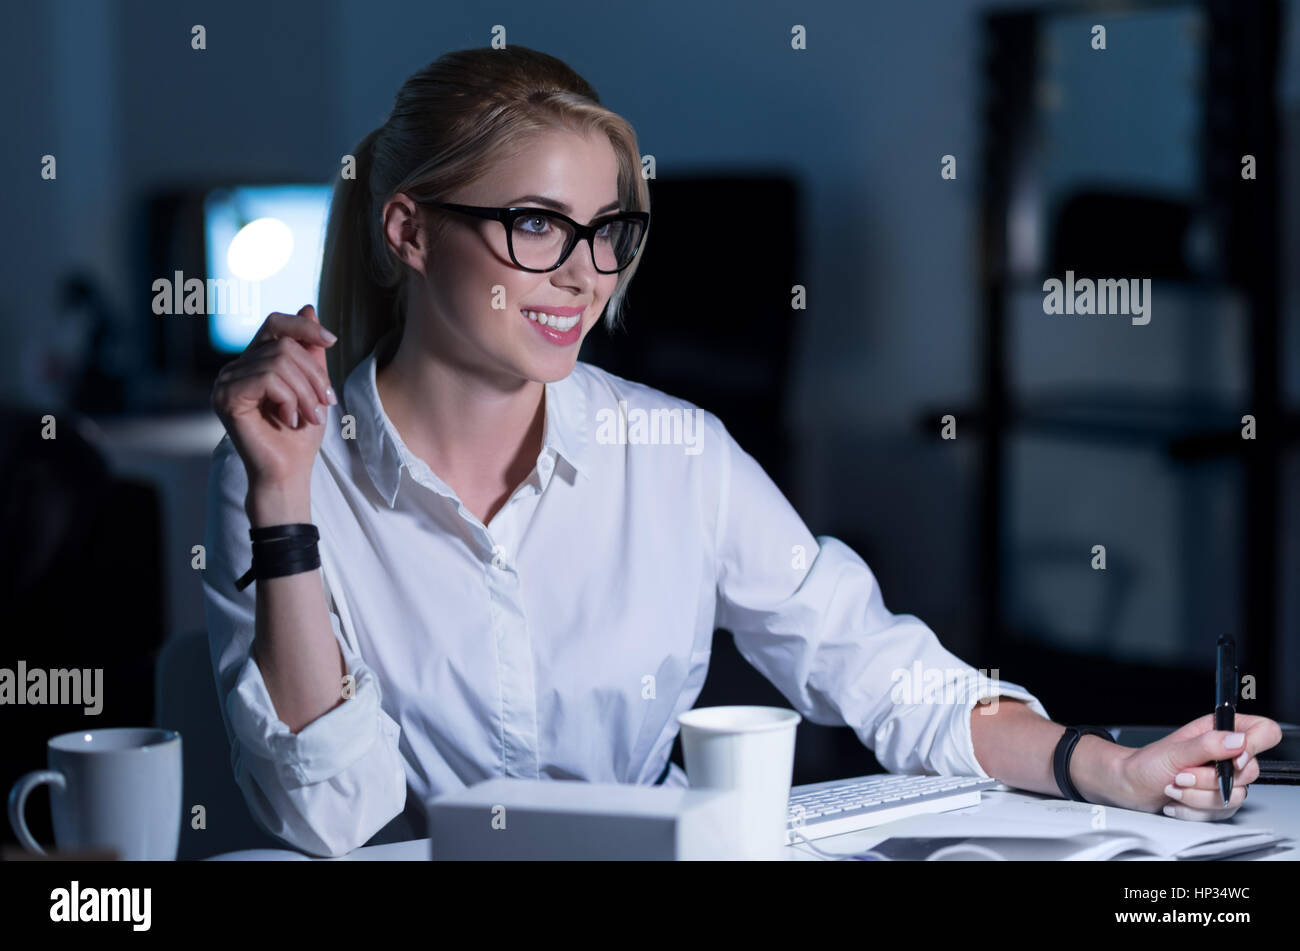 Cheerful positive secretary taking notes in the office - Stock Image